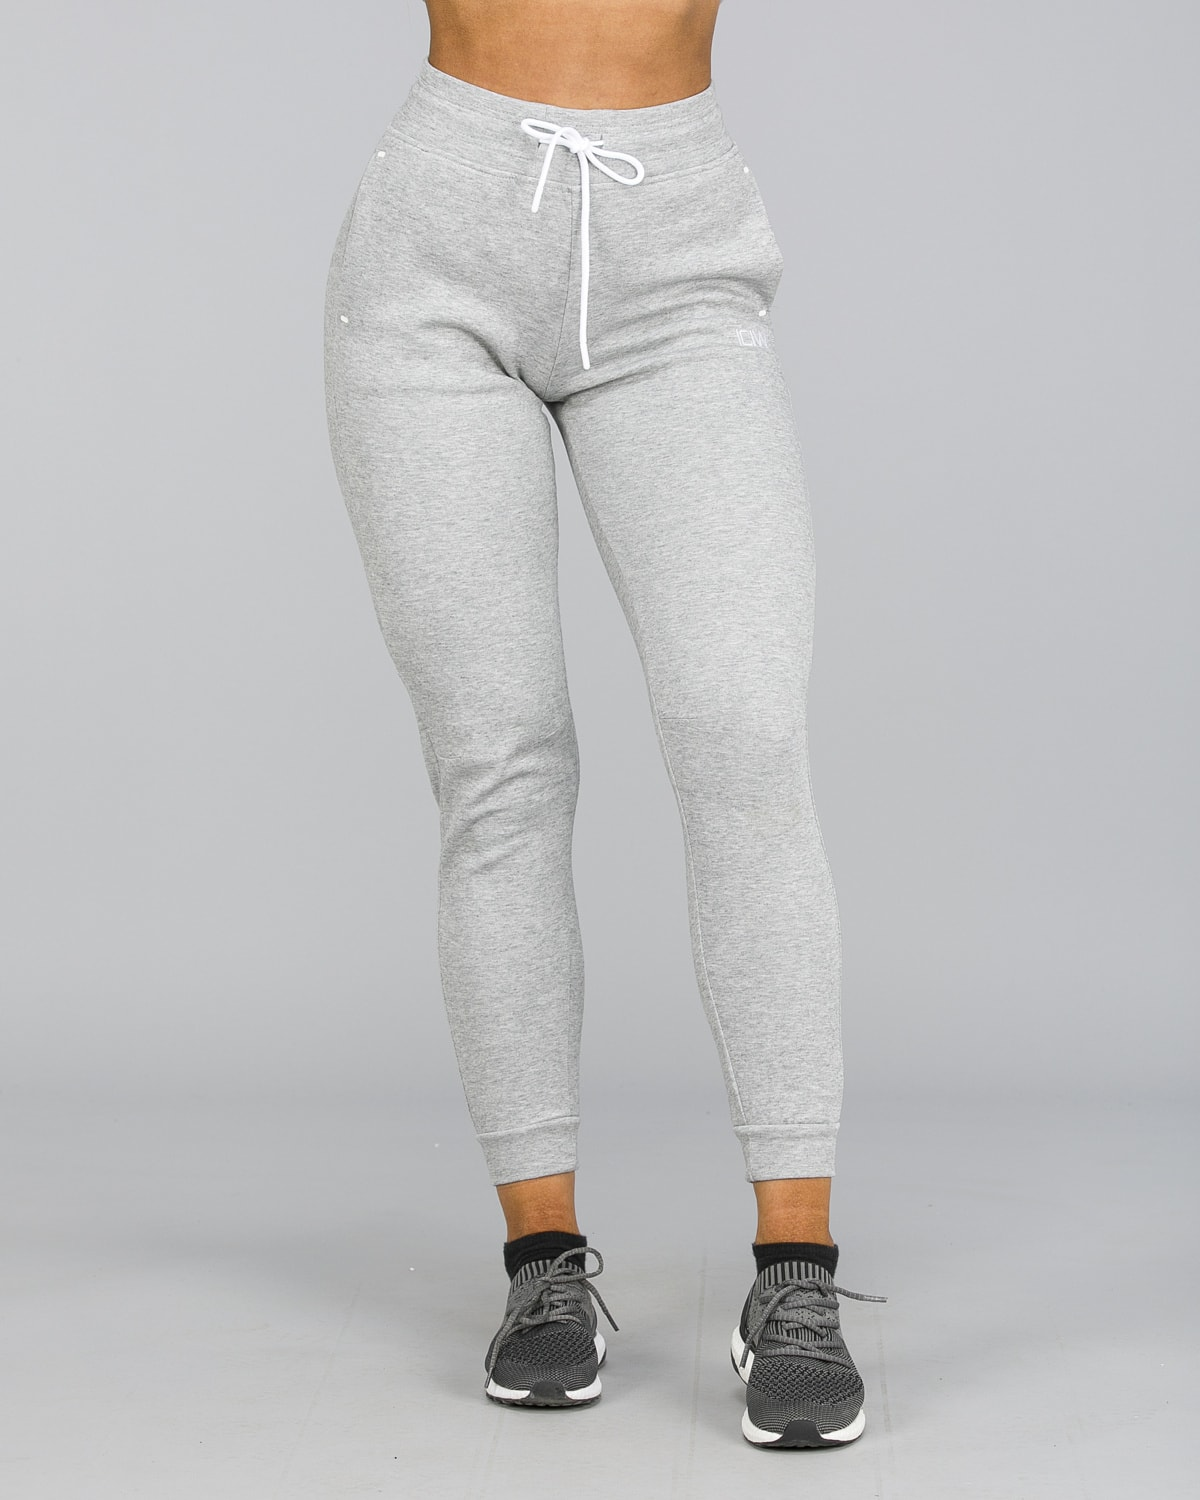 ICANIWILL – Sweat Pants – Light Grey f